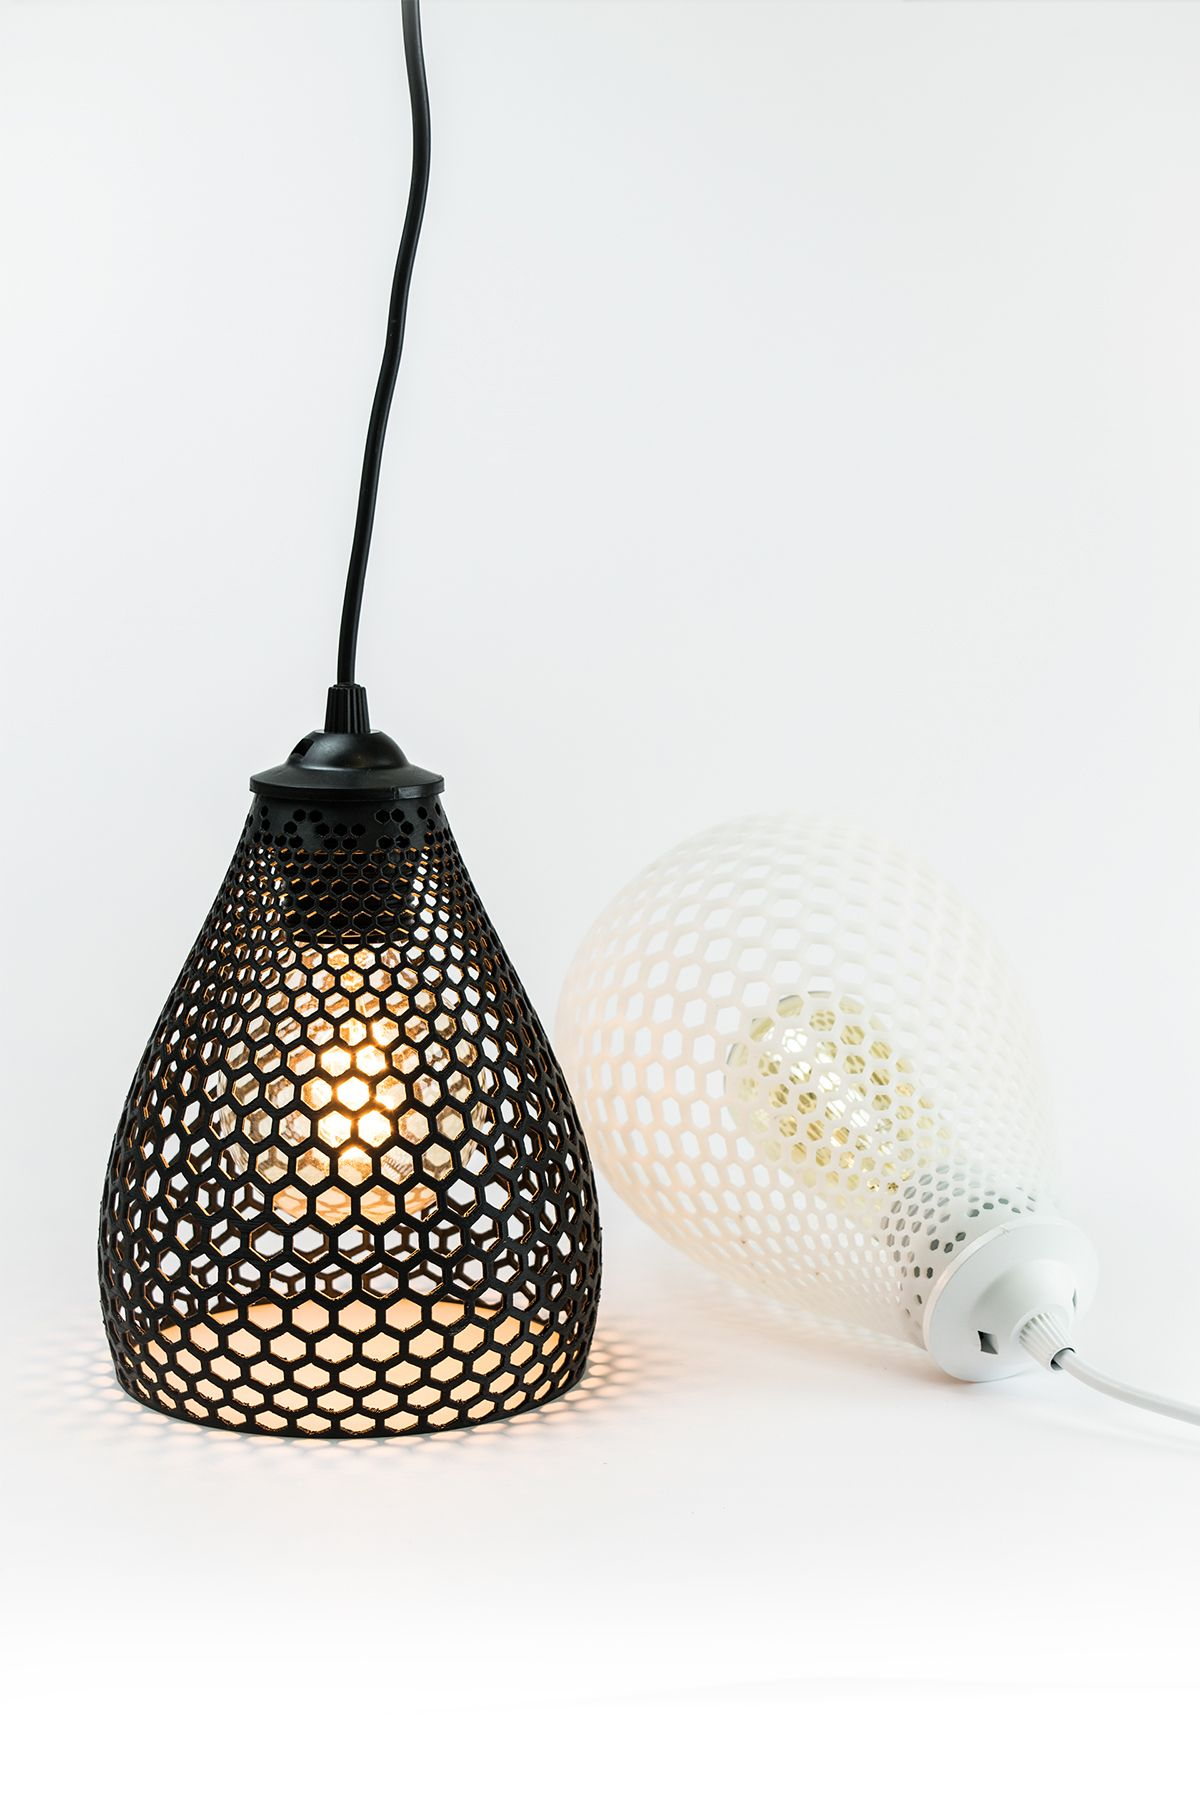 Variations Of 3d Printed Lamps Concept Emerges From Having A Simple Hexagonal Grid And A Basic Shape Of A Lamp Shade C Com Imagens Luminaria 3d Impressora 3d Impressao 3d